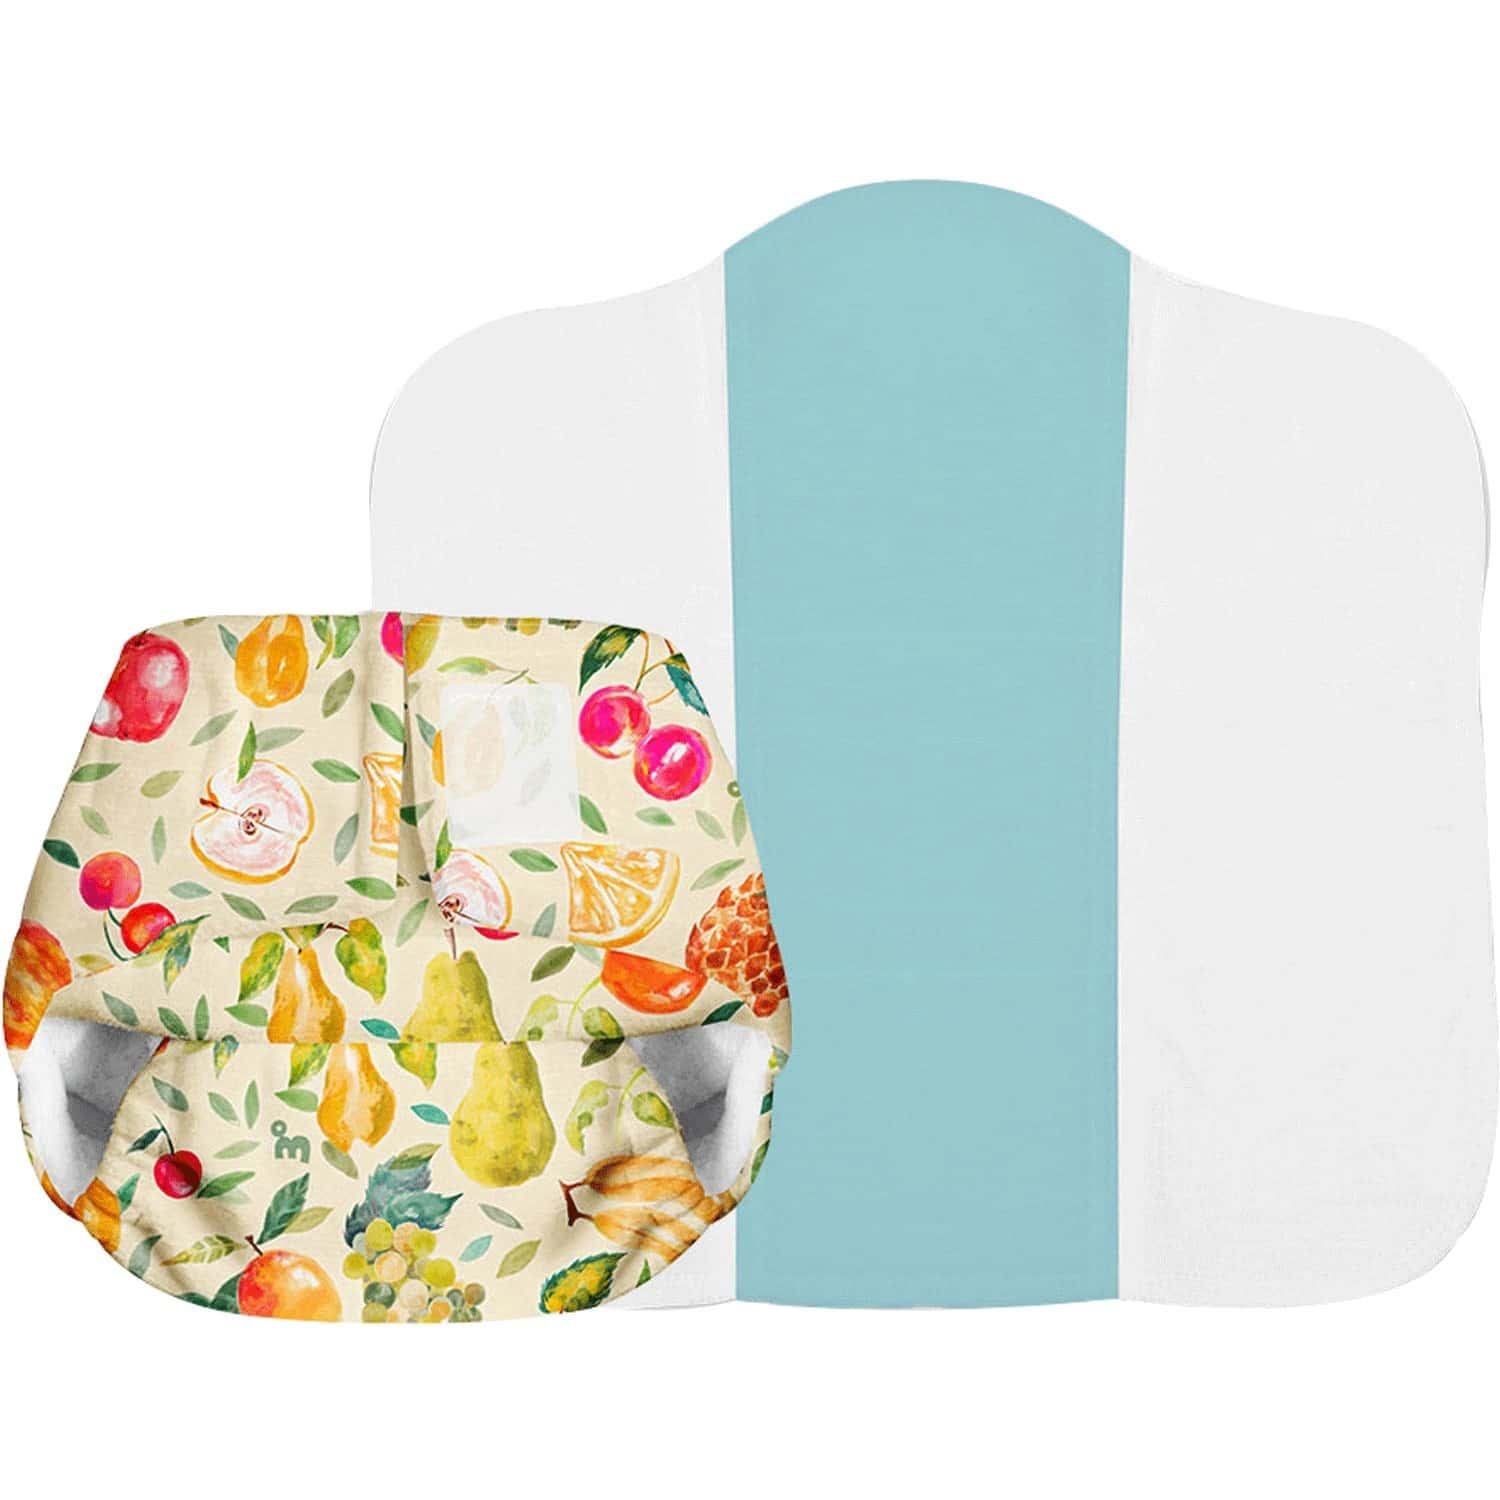 Superbottoms Newborn Uno Reusable Cloth Diaper With Dry Feel Pad - 0-6 Months - Fruit Burst